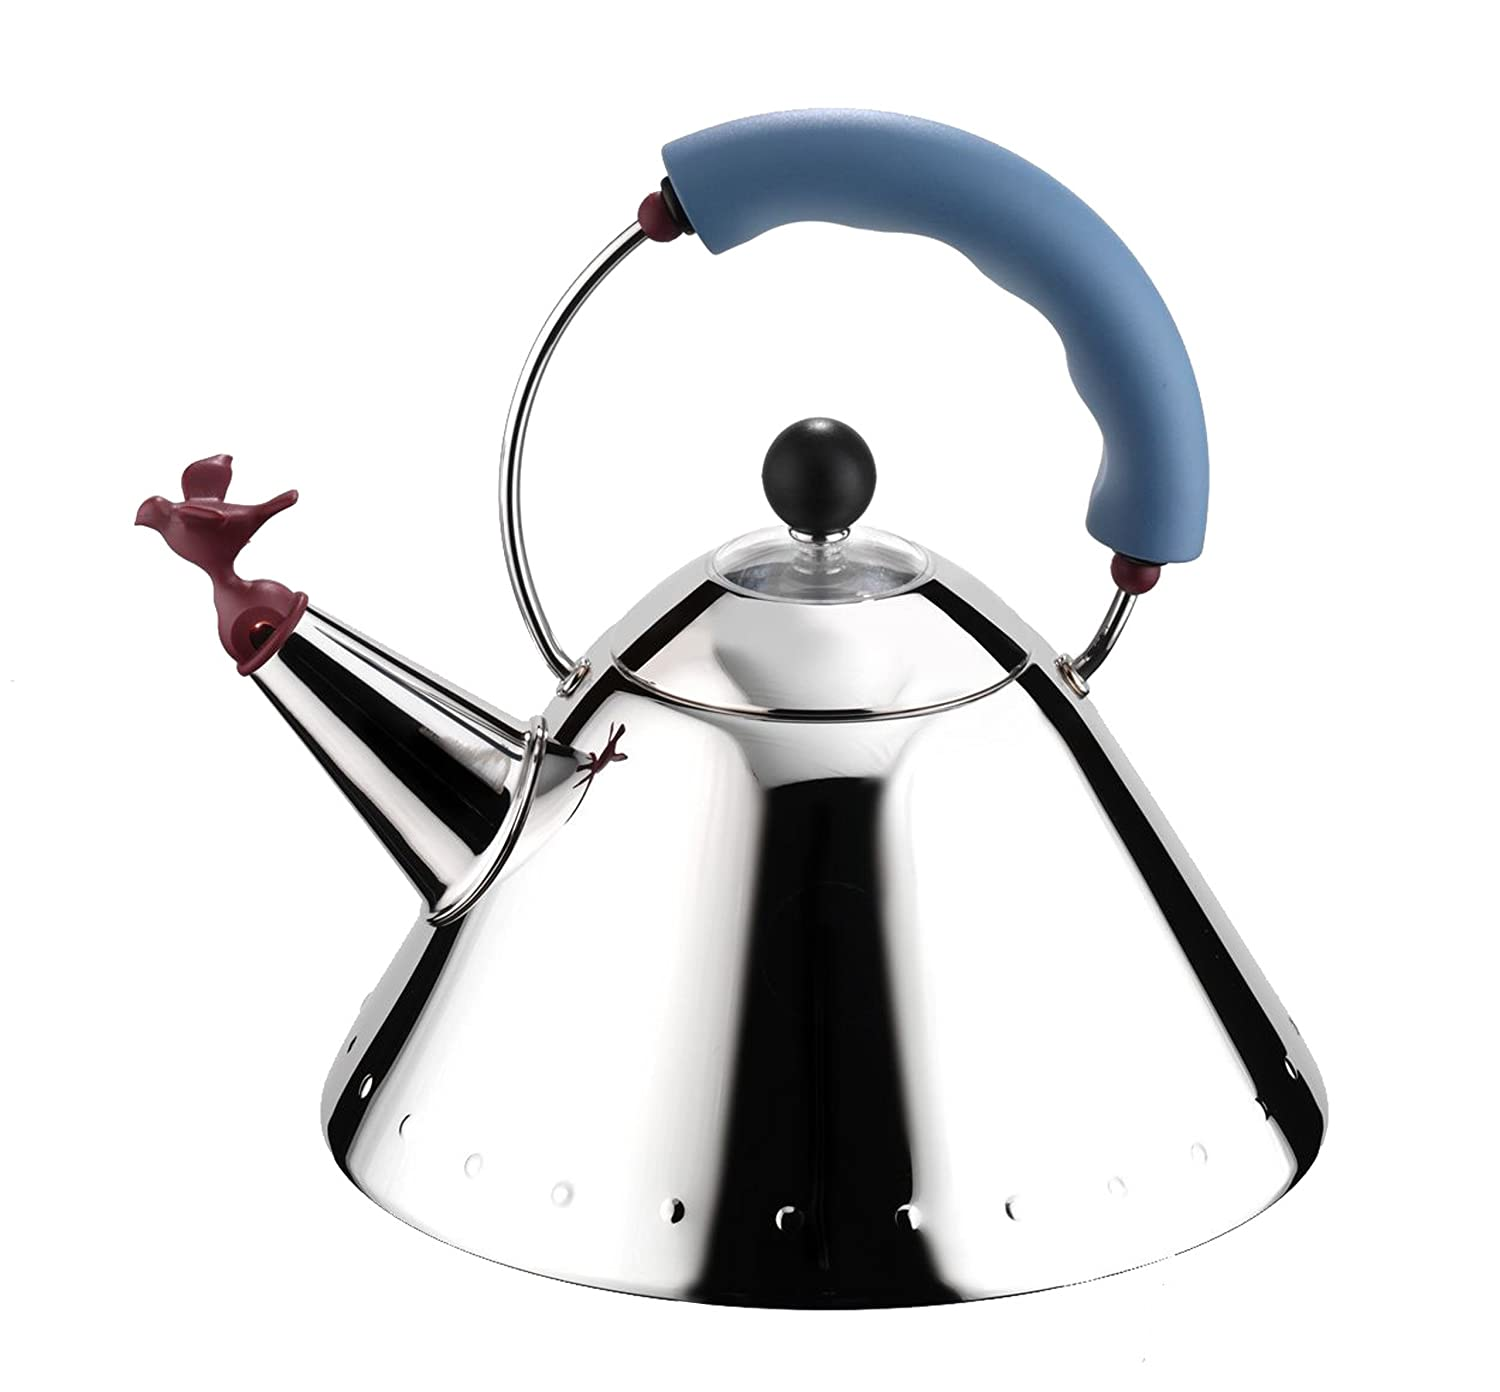 amazoncom alessi michael graves kettle with bird whistle blue . amazoncom alessi michael graves kettle with bird whistle blue handleall clad tea kettle kitchen  dining